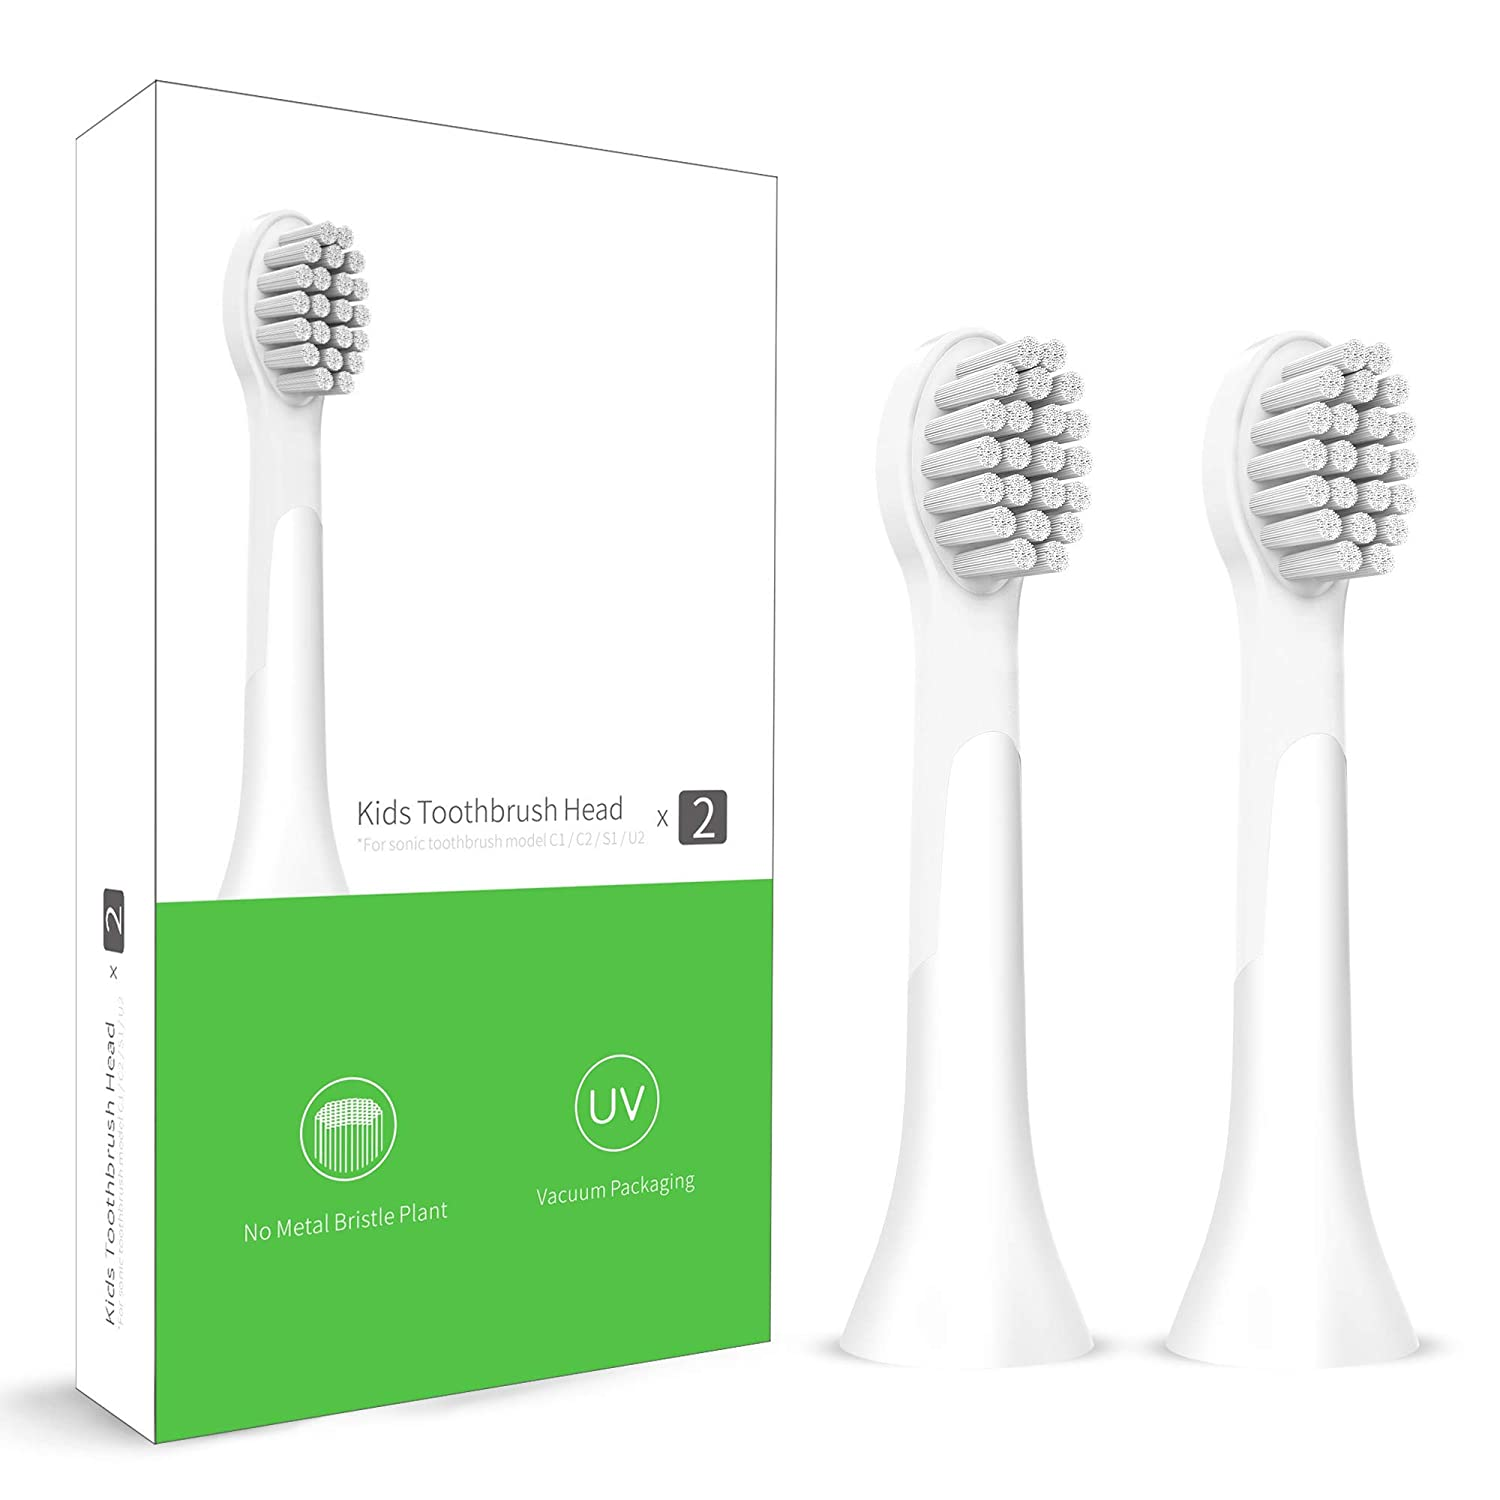 Aiwejay Children's Sonic Electric Toothbrush (Brush Heads)